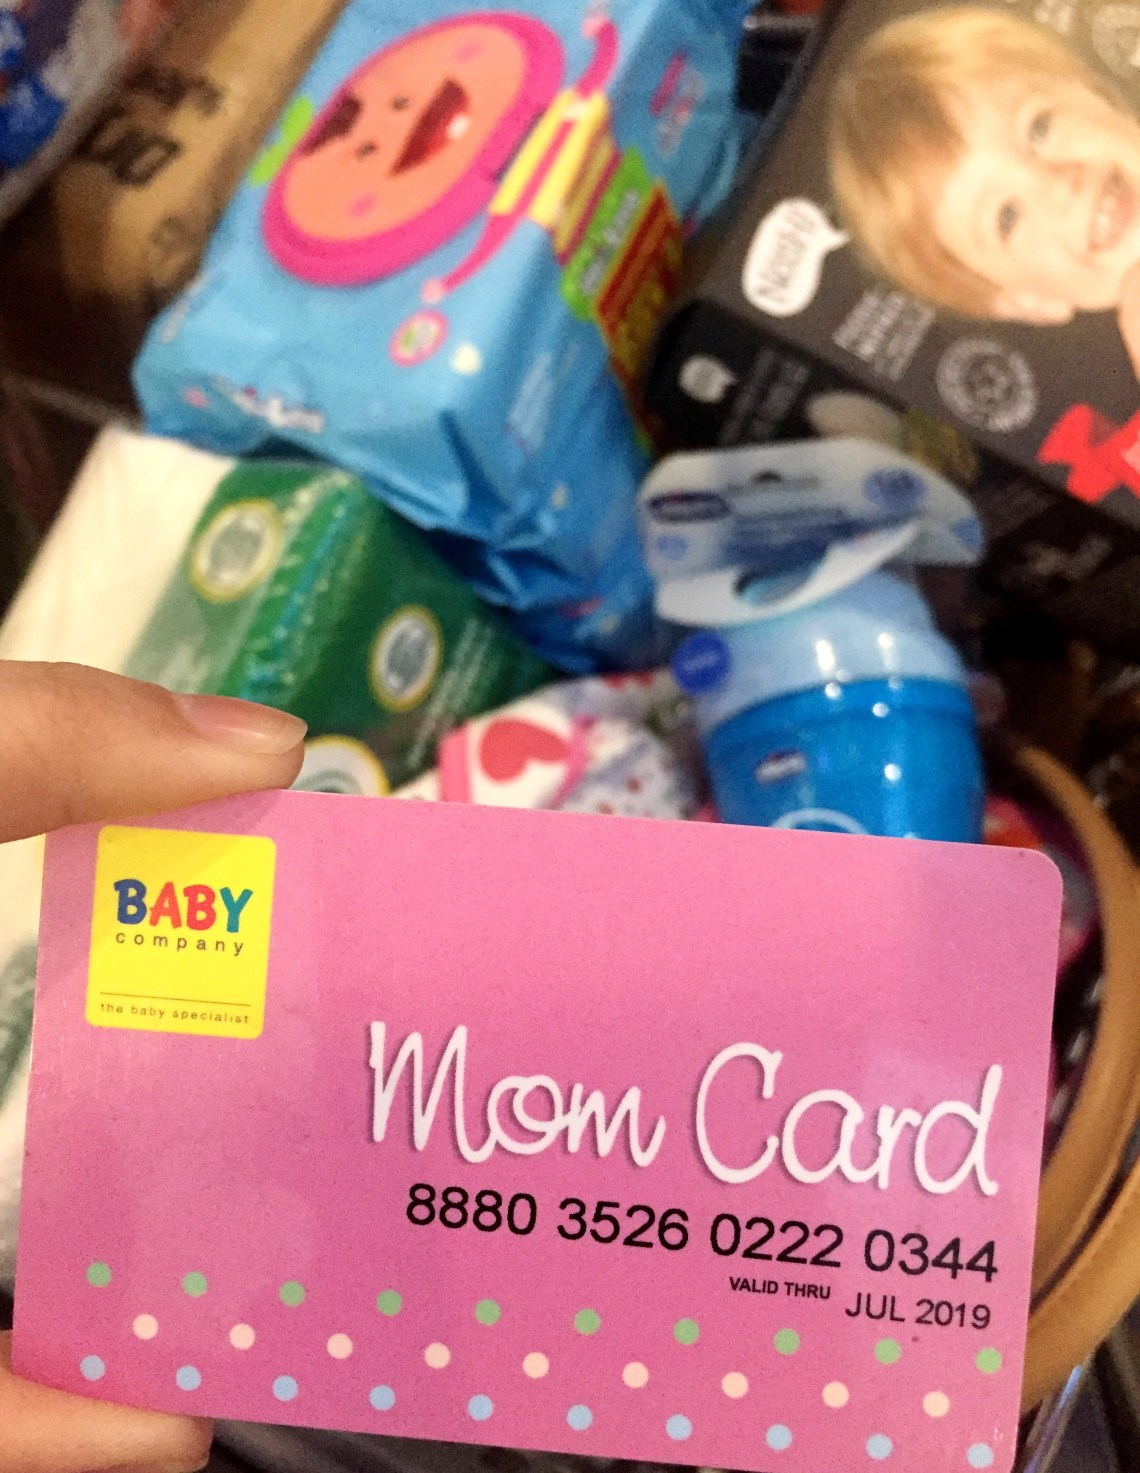 dyosathemomma: Baby Company Grand Baby Fair Year 8 SM Megatrade Hall, Mom Card